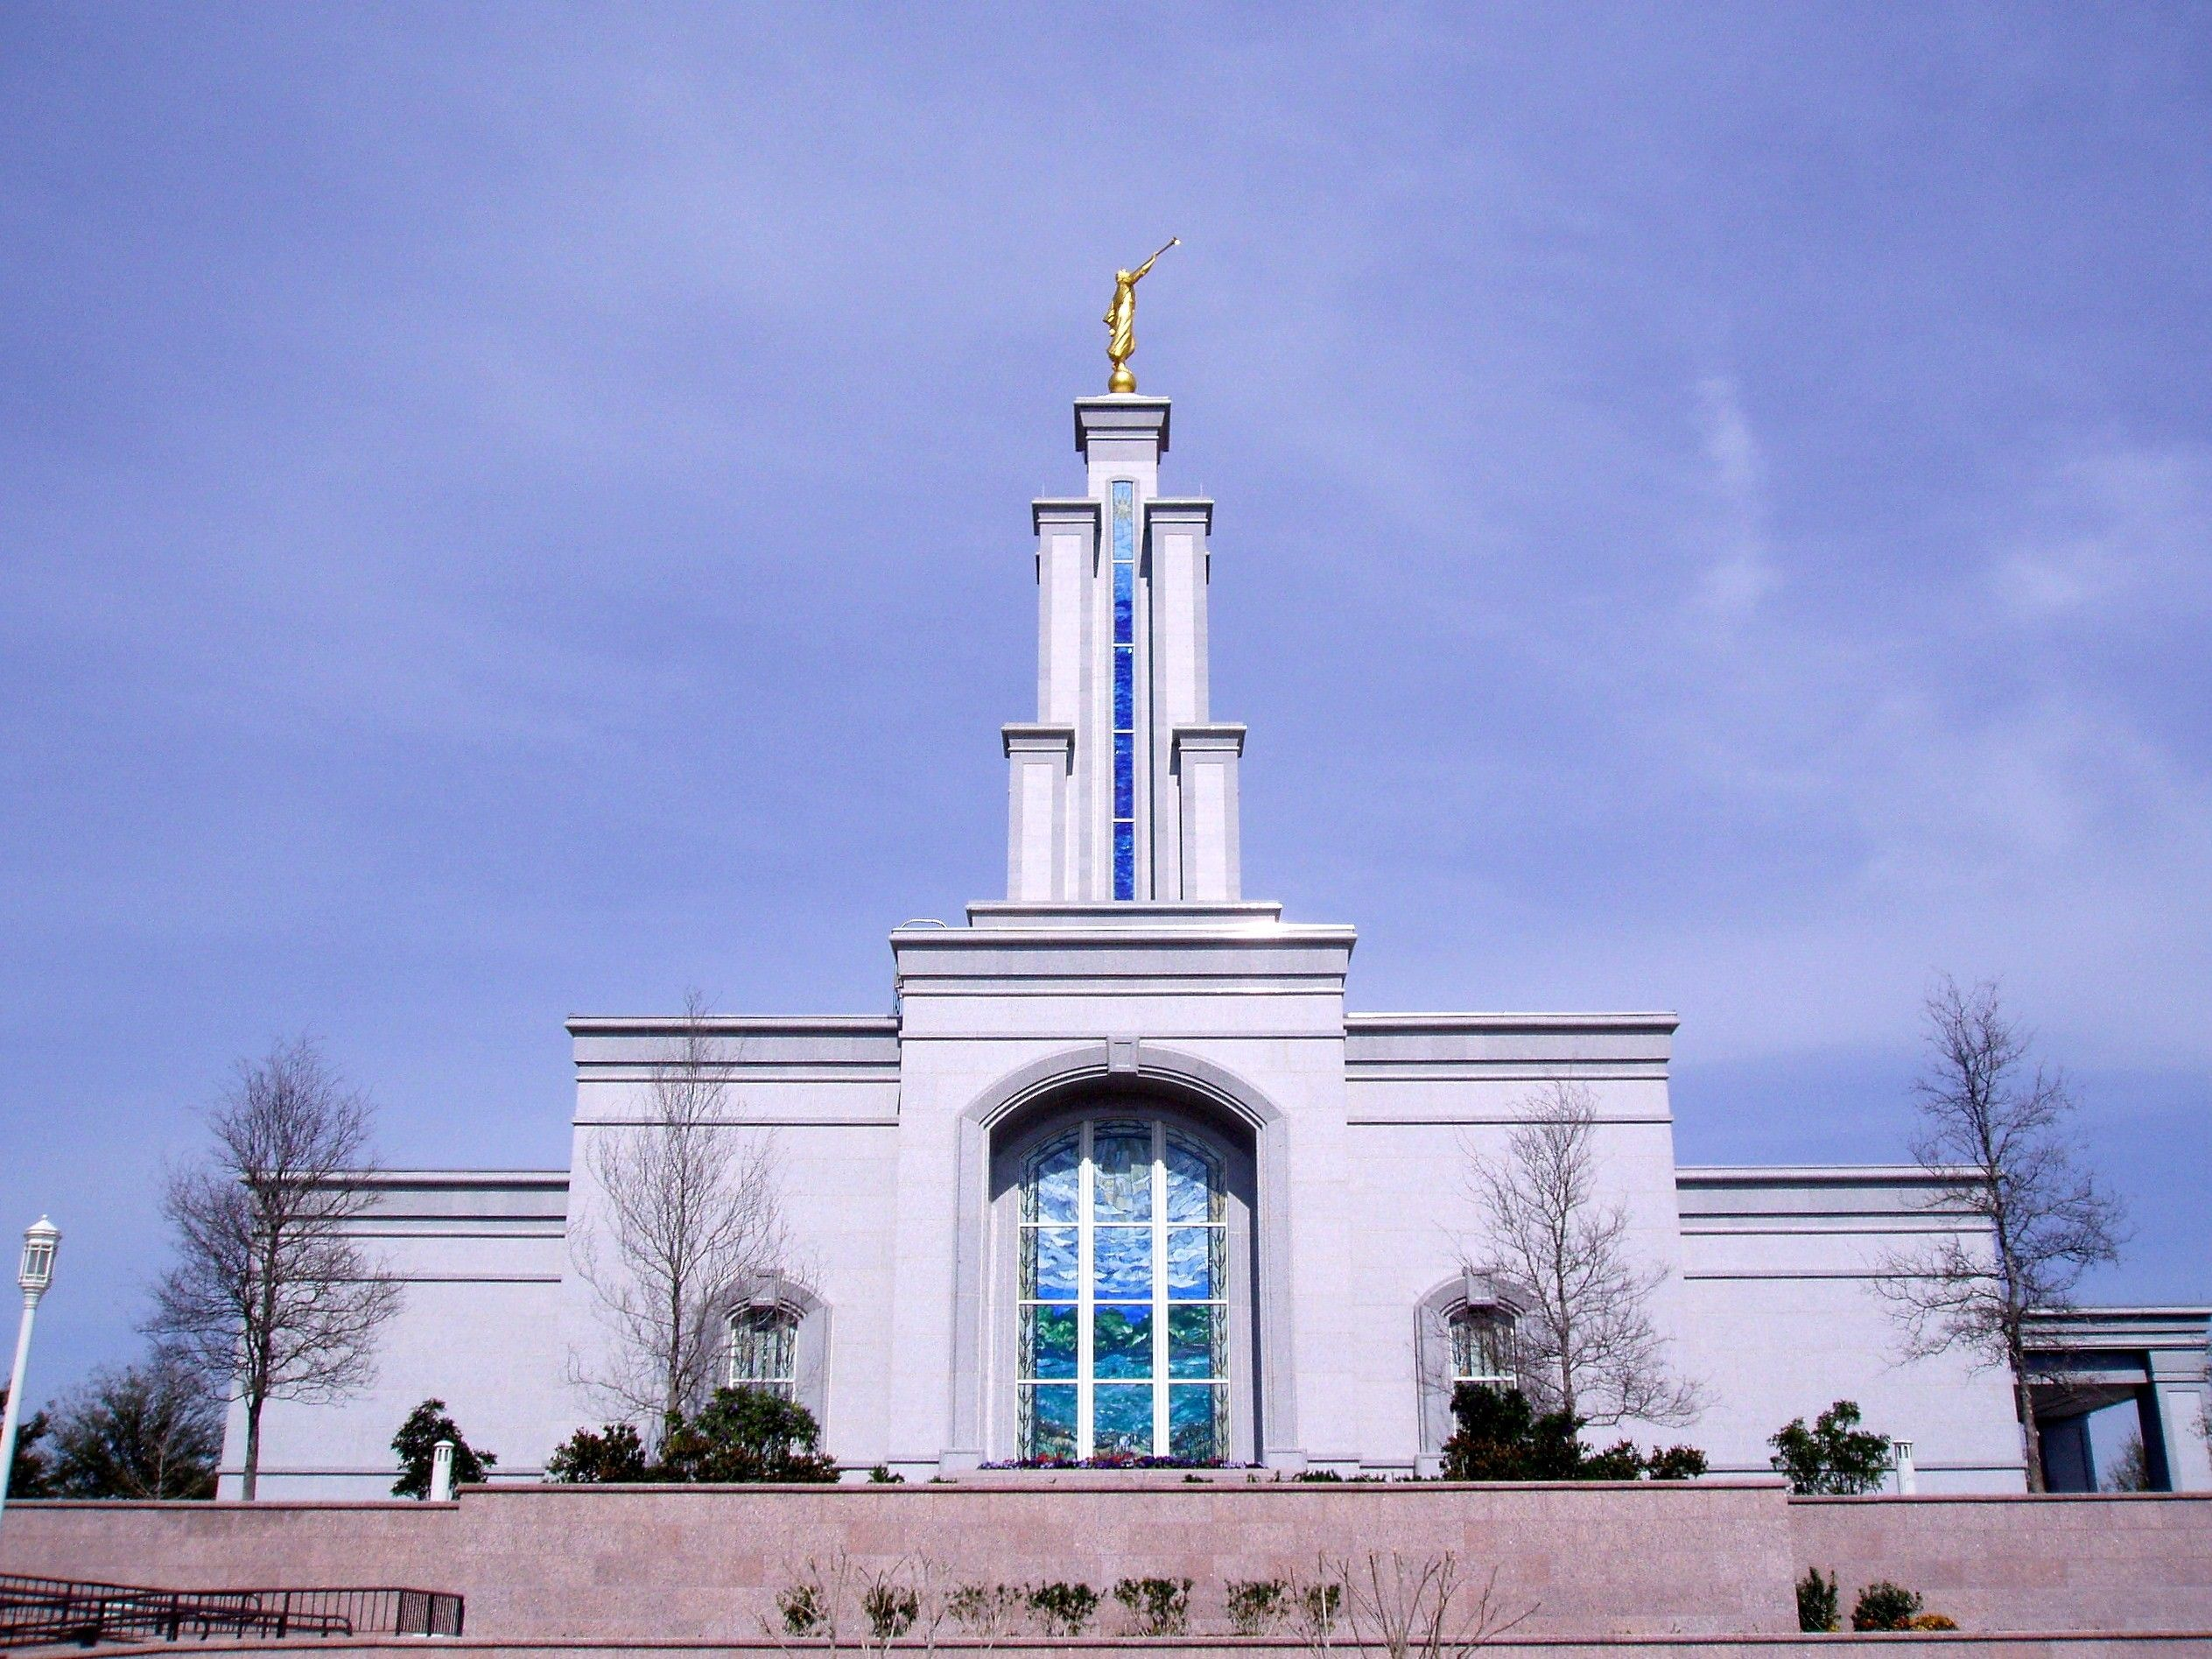 The San Antonio Texas Temple south view, including the windows and scenery.